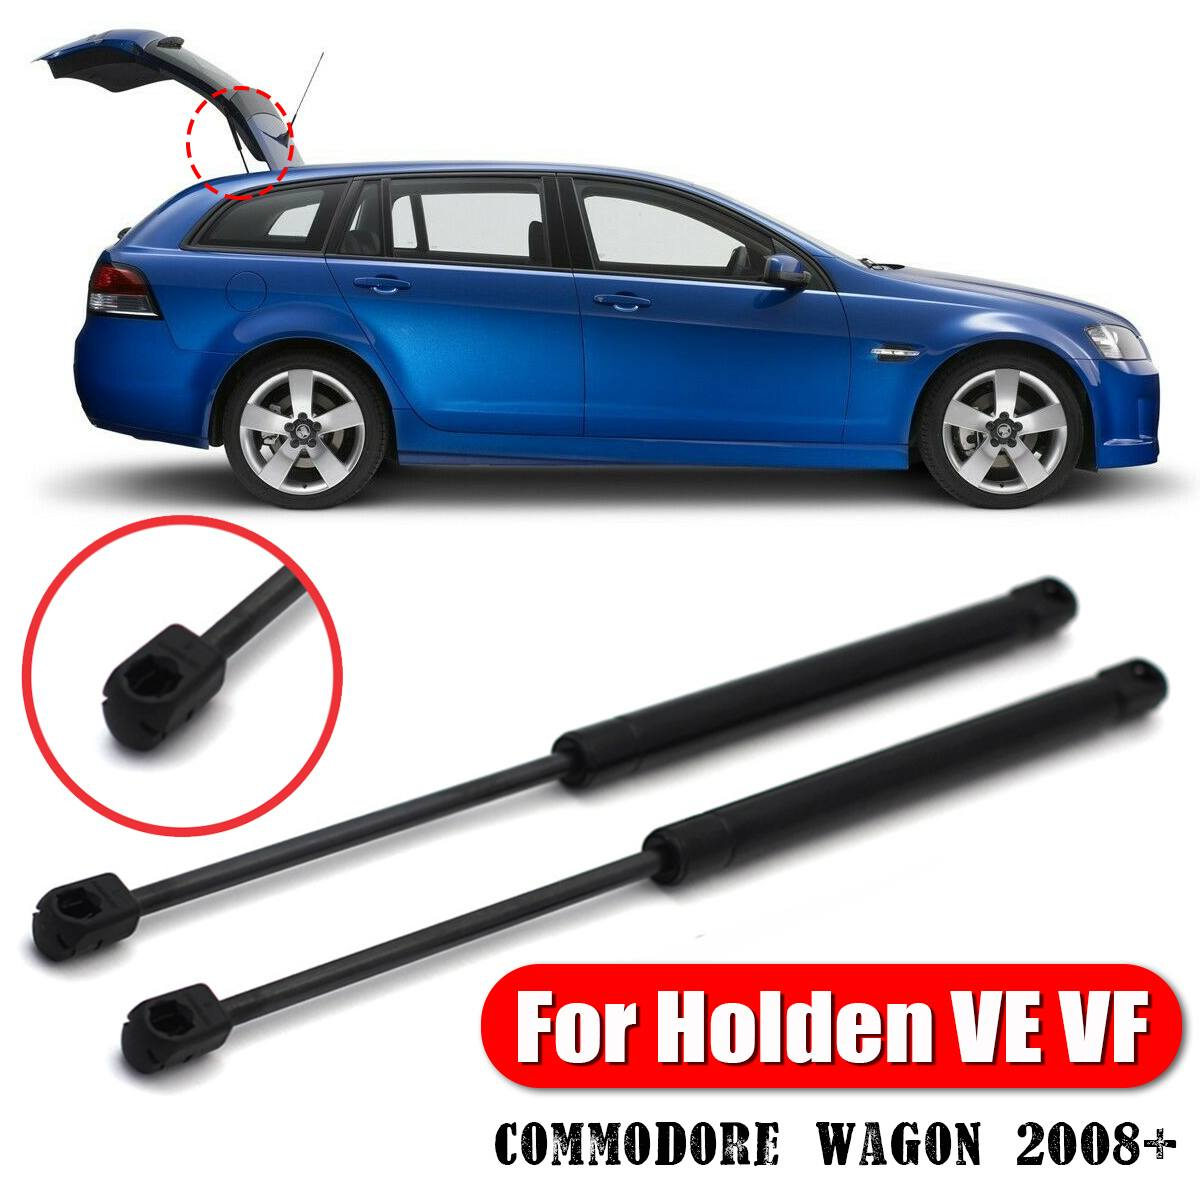 2Pcs Car Rear Tailgate Boot Gas Lift Support Struts bar For Holden VE VF Commodore Wagon 2008+